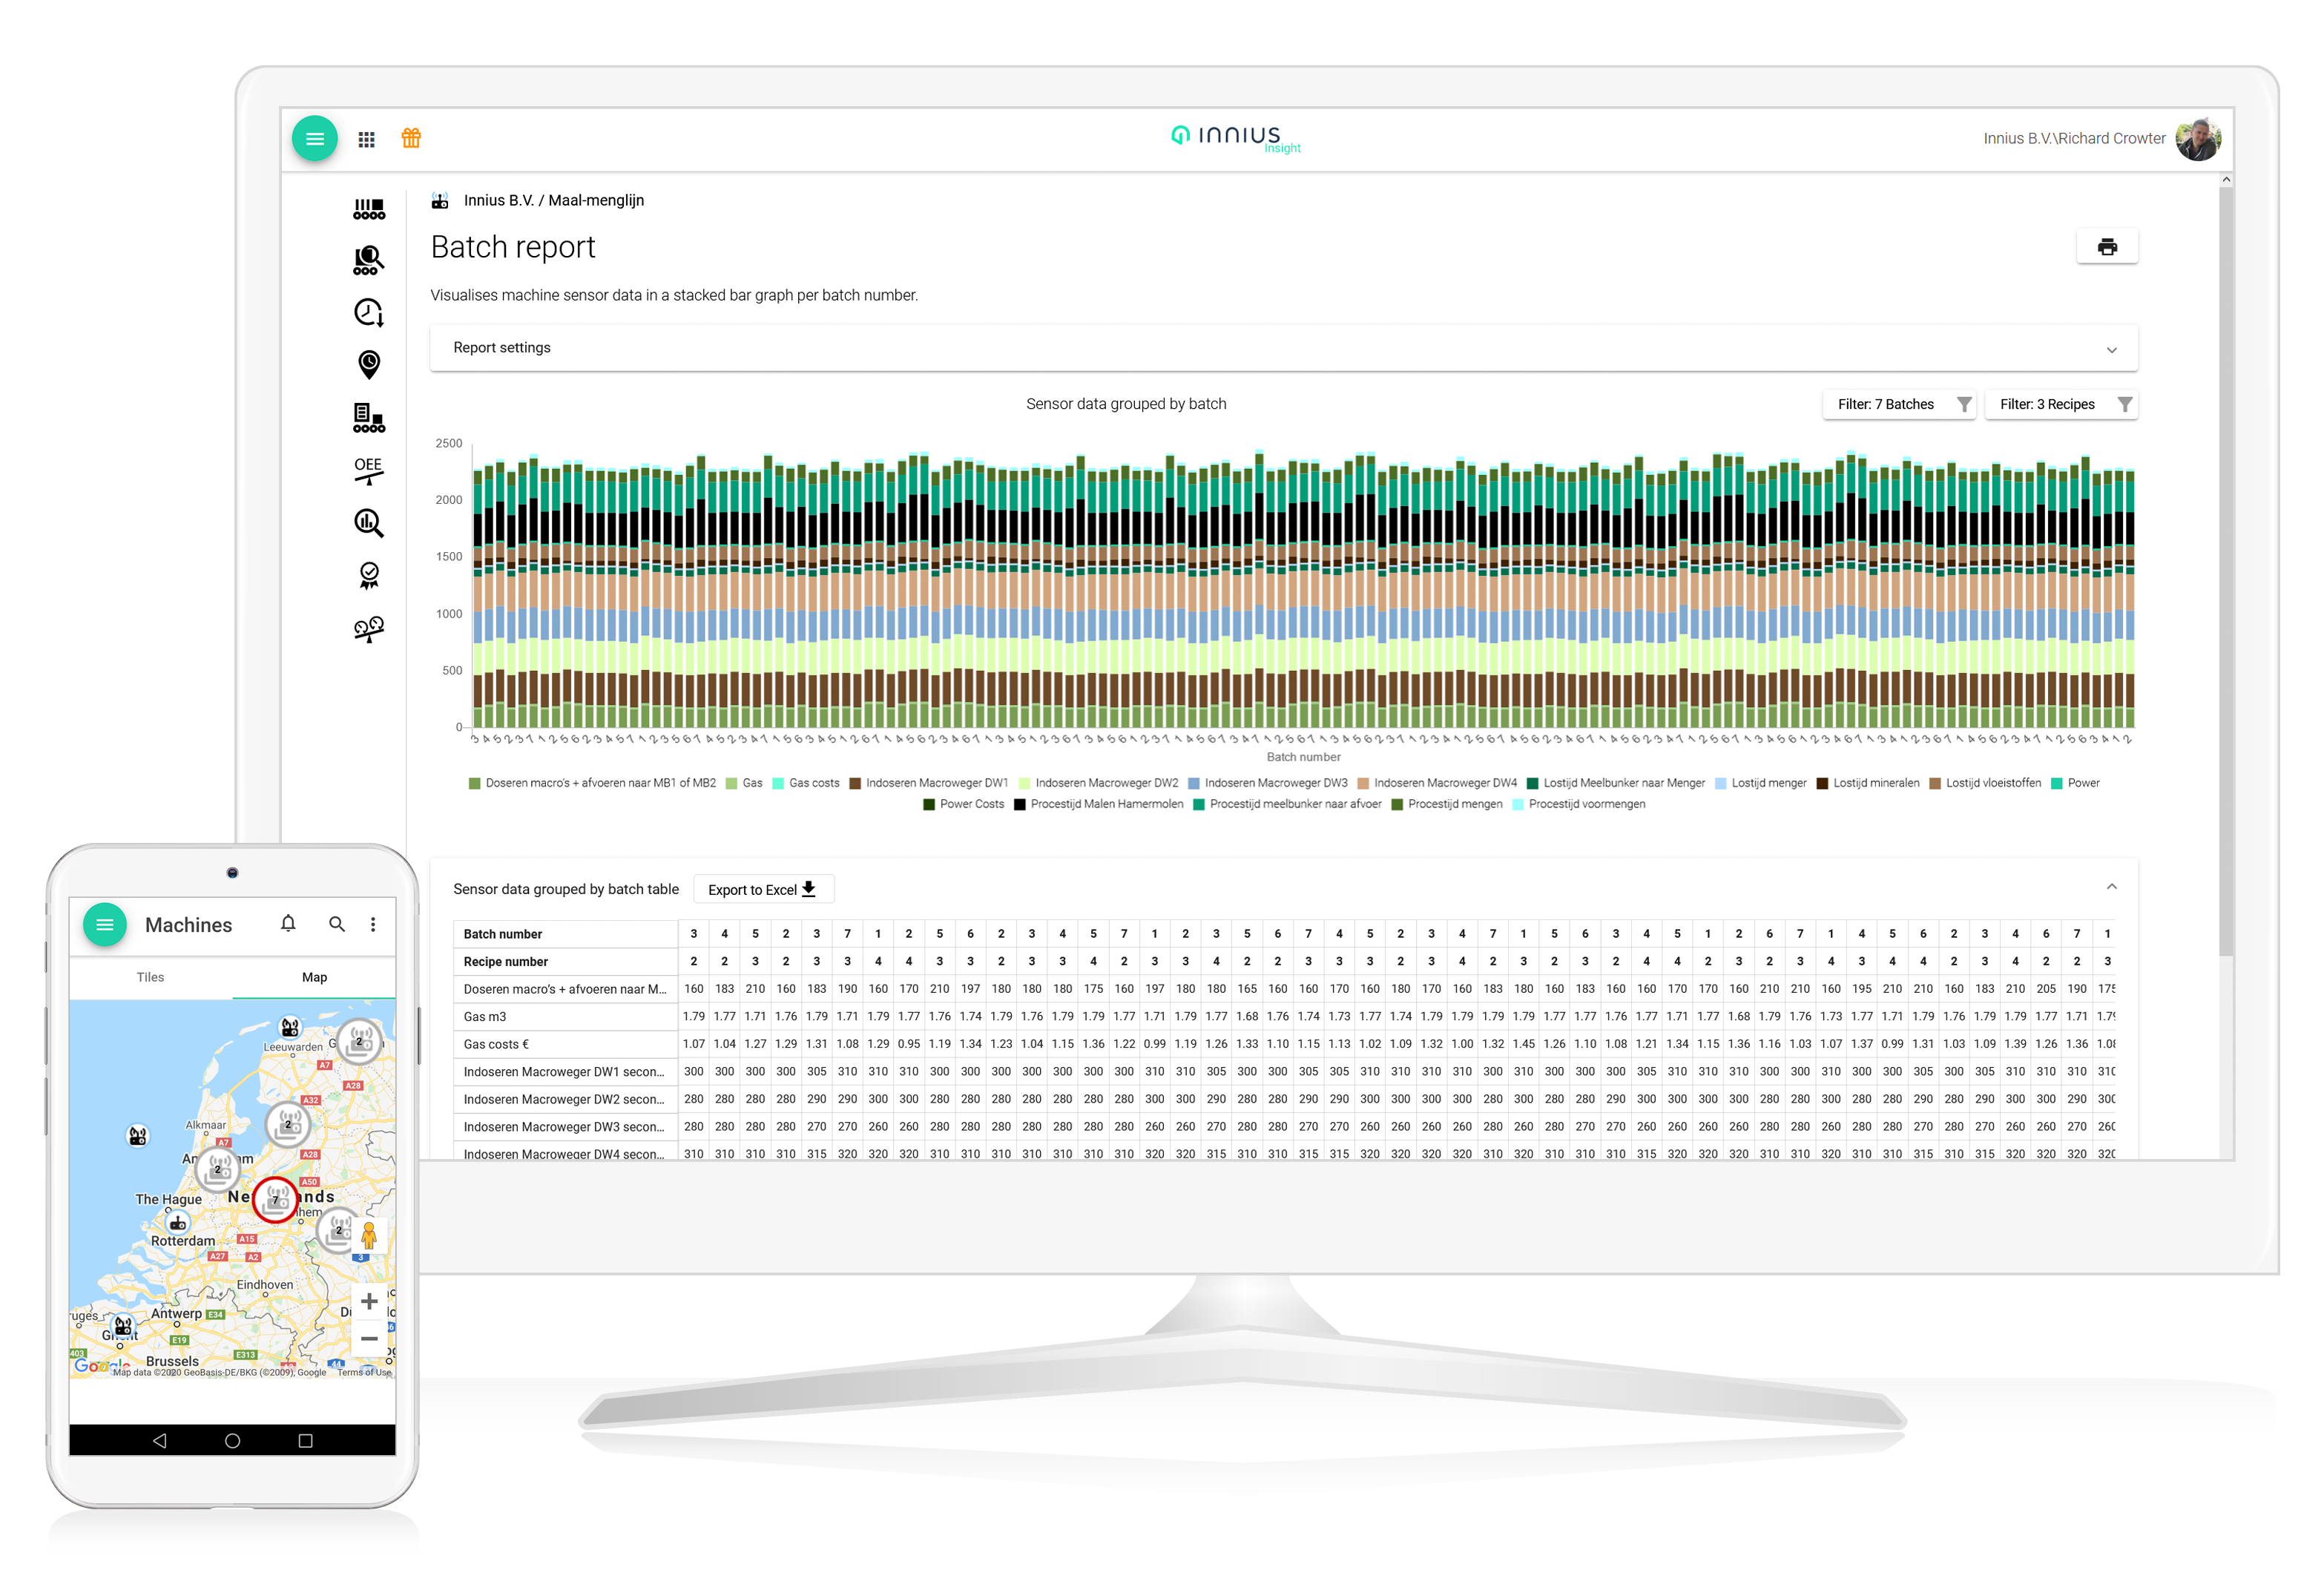 Innius Screens for Desktop and Mobile showing Batch Report and Locations